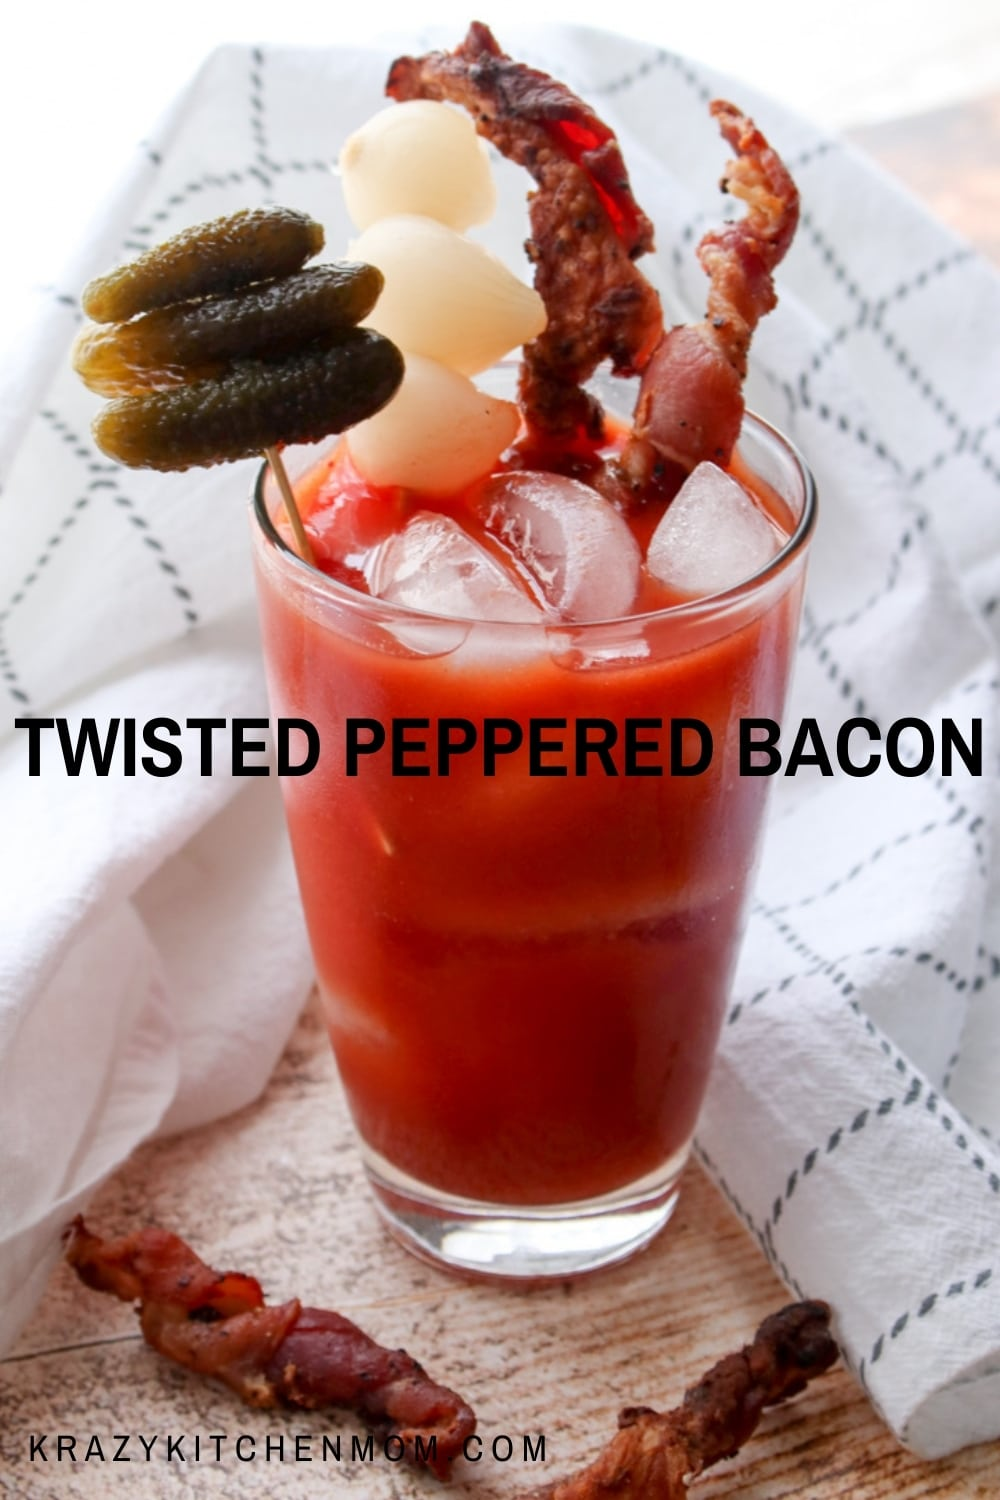 Make bacon the star of breakfast with this social medial sensation - twisted bacon. This bacon is baked and makes cleanup a breeze.  via @krazykitchenmom